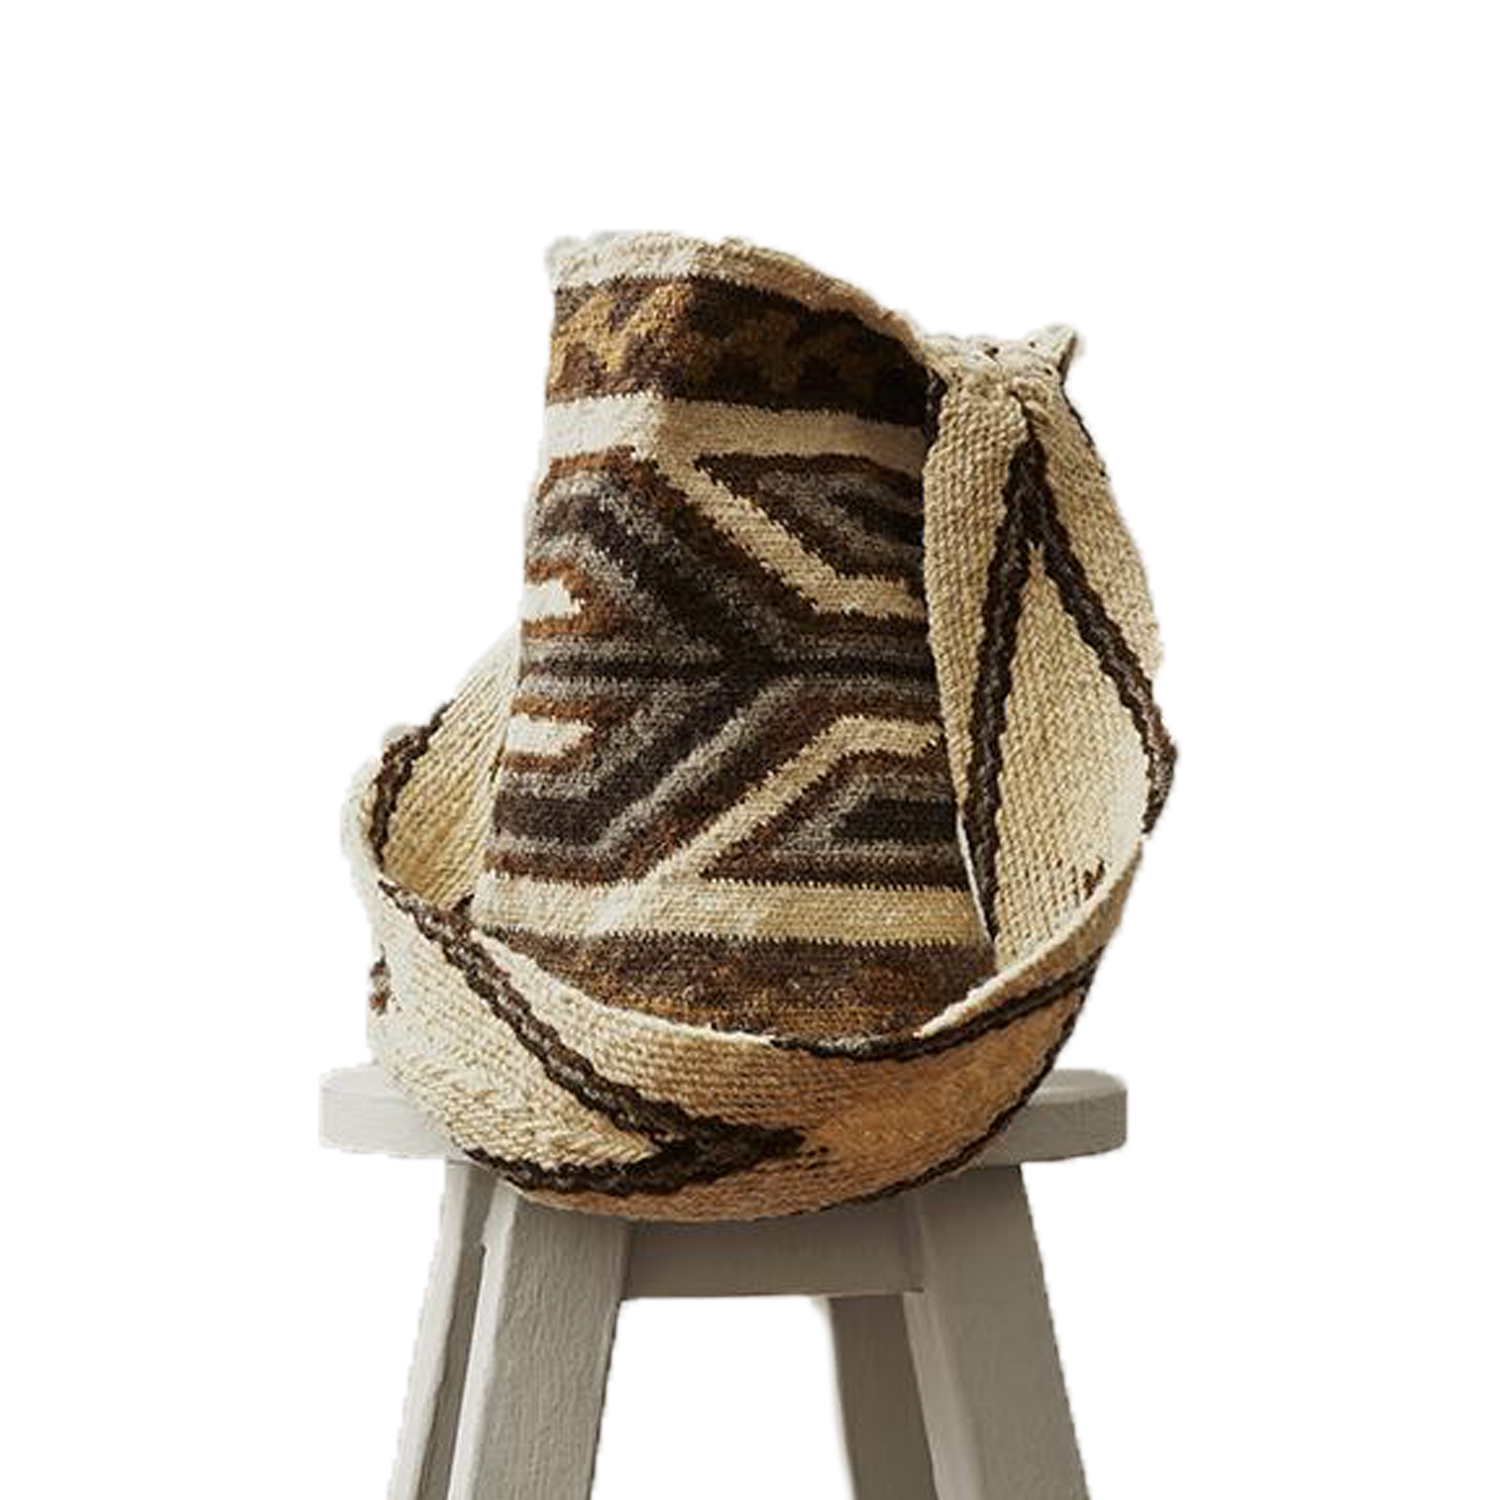 来自Weaving Hope系列的Mochila,Hope Made  $169